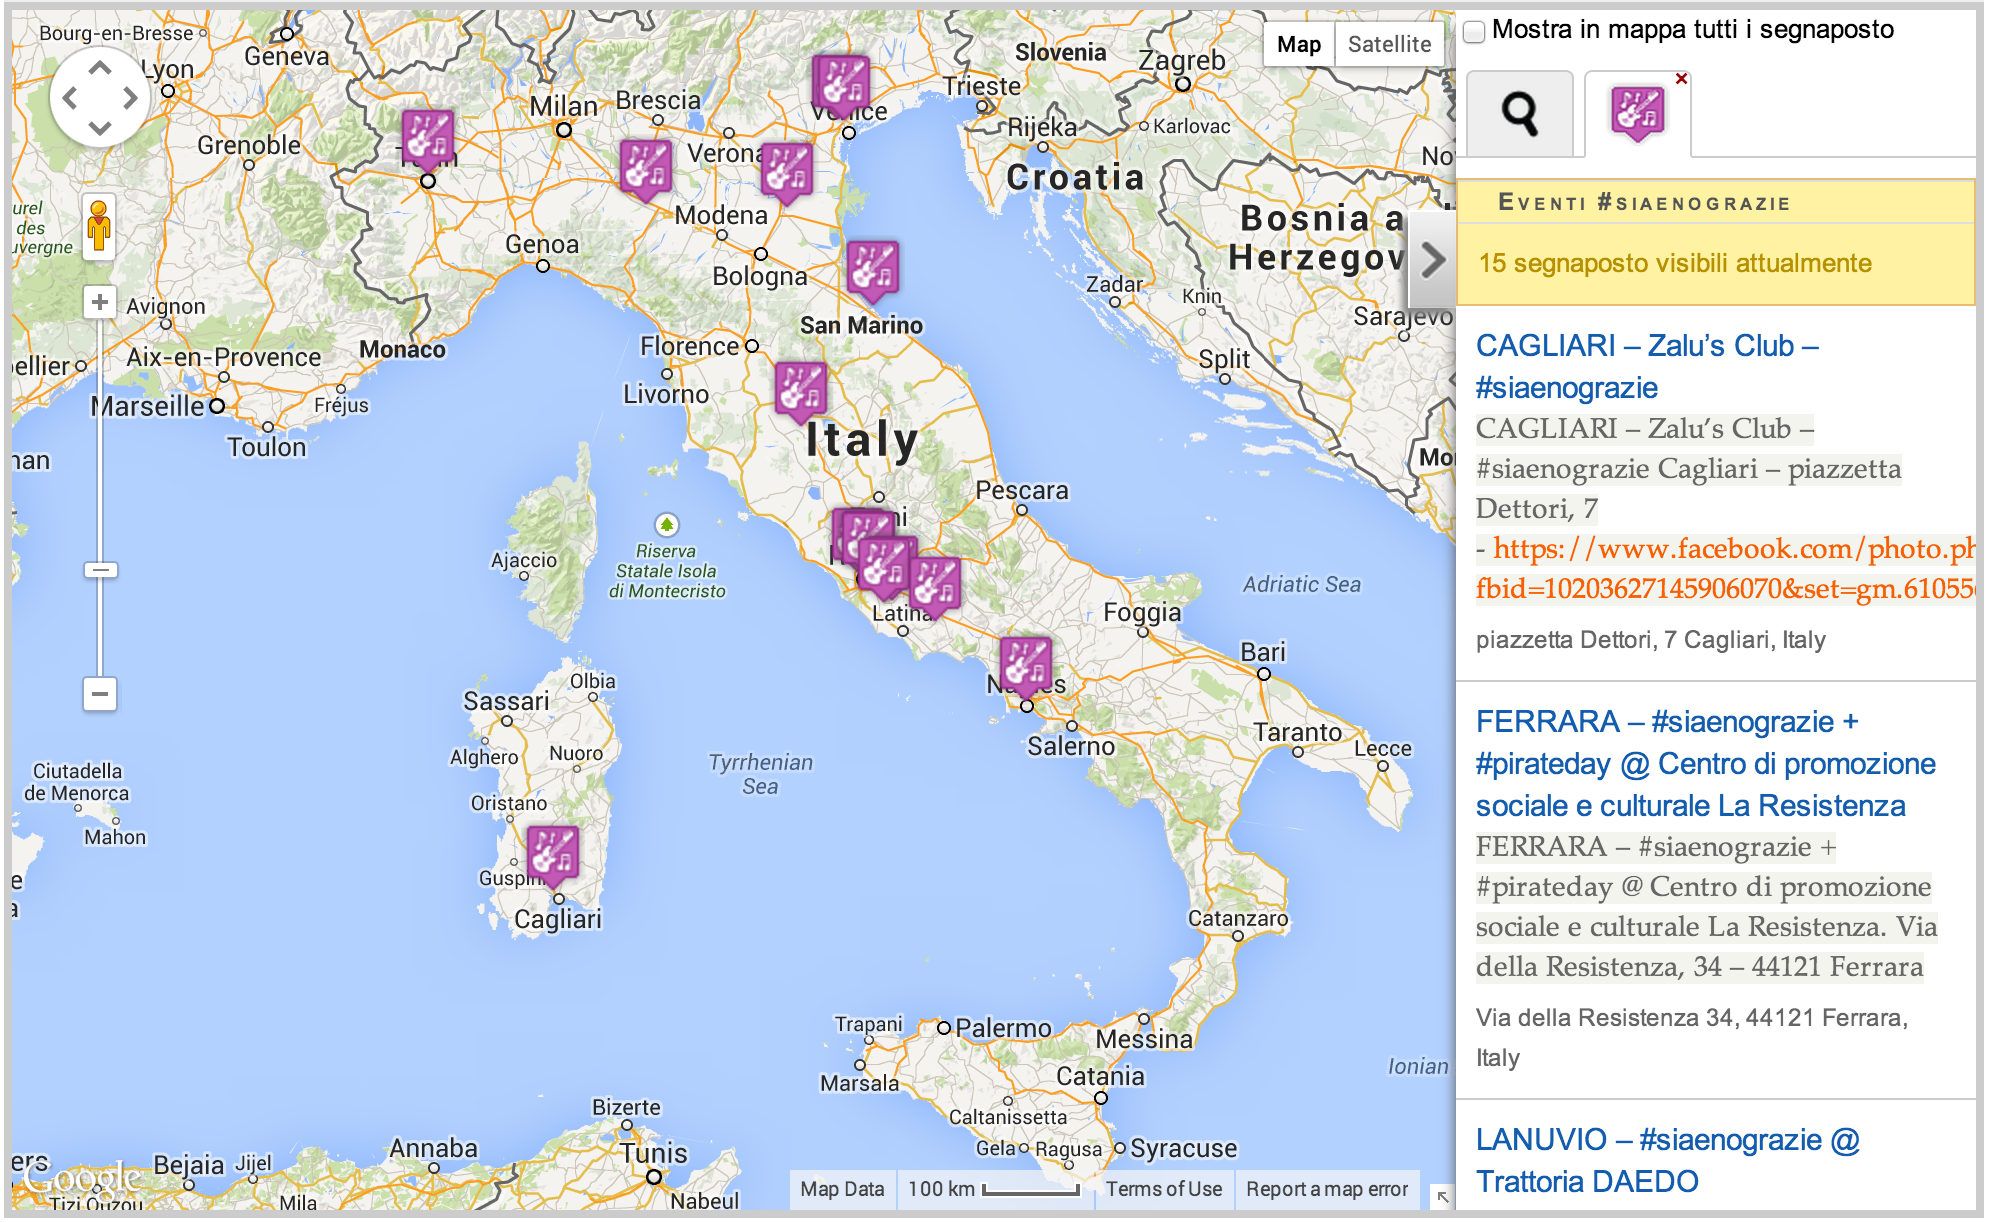 http://www.patamu.com/index.php/it/siaenograzie-evento-nazionale-12-aprile-map-by-patamu-ita#!/catid=5;3&c=(42.46889811450699, 8.324248687500008)&z=6